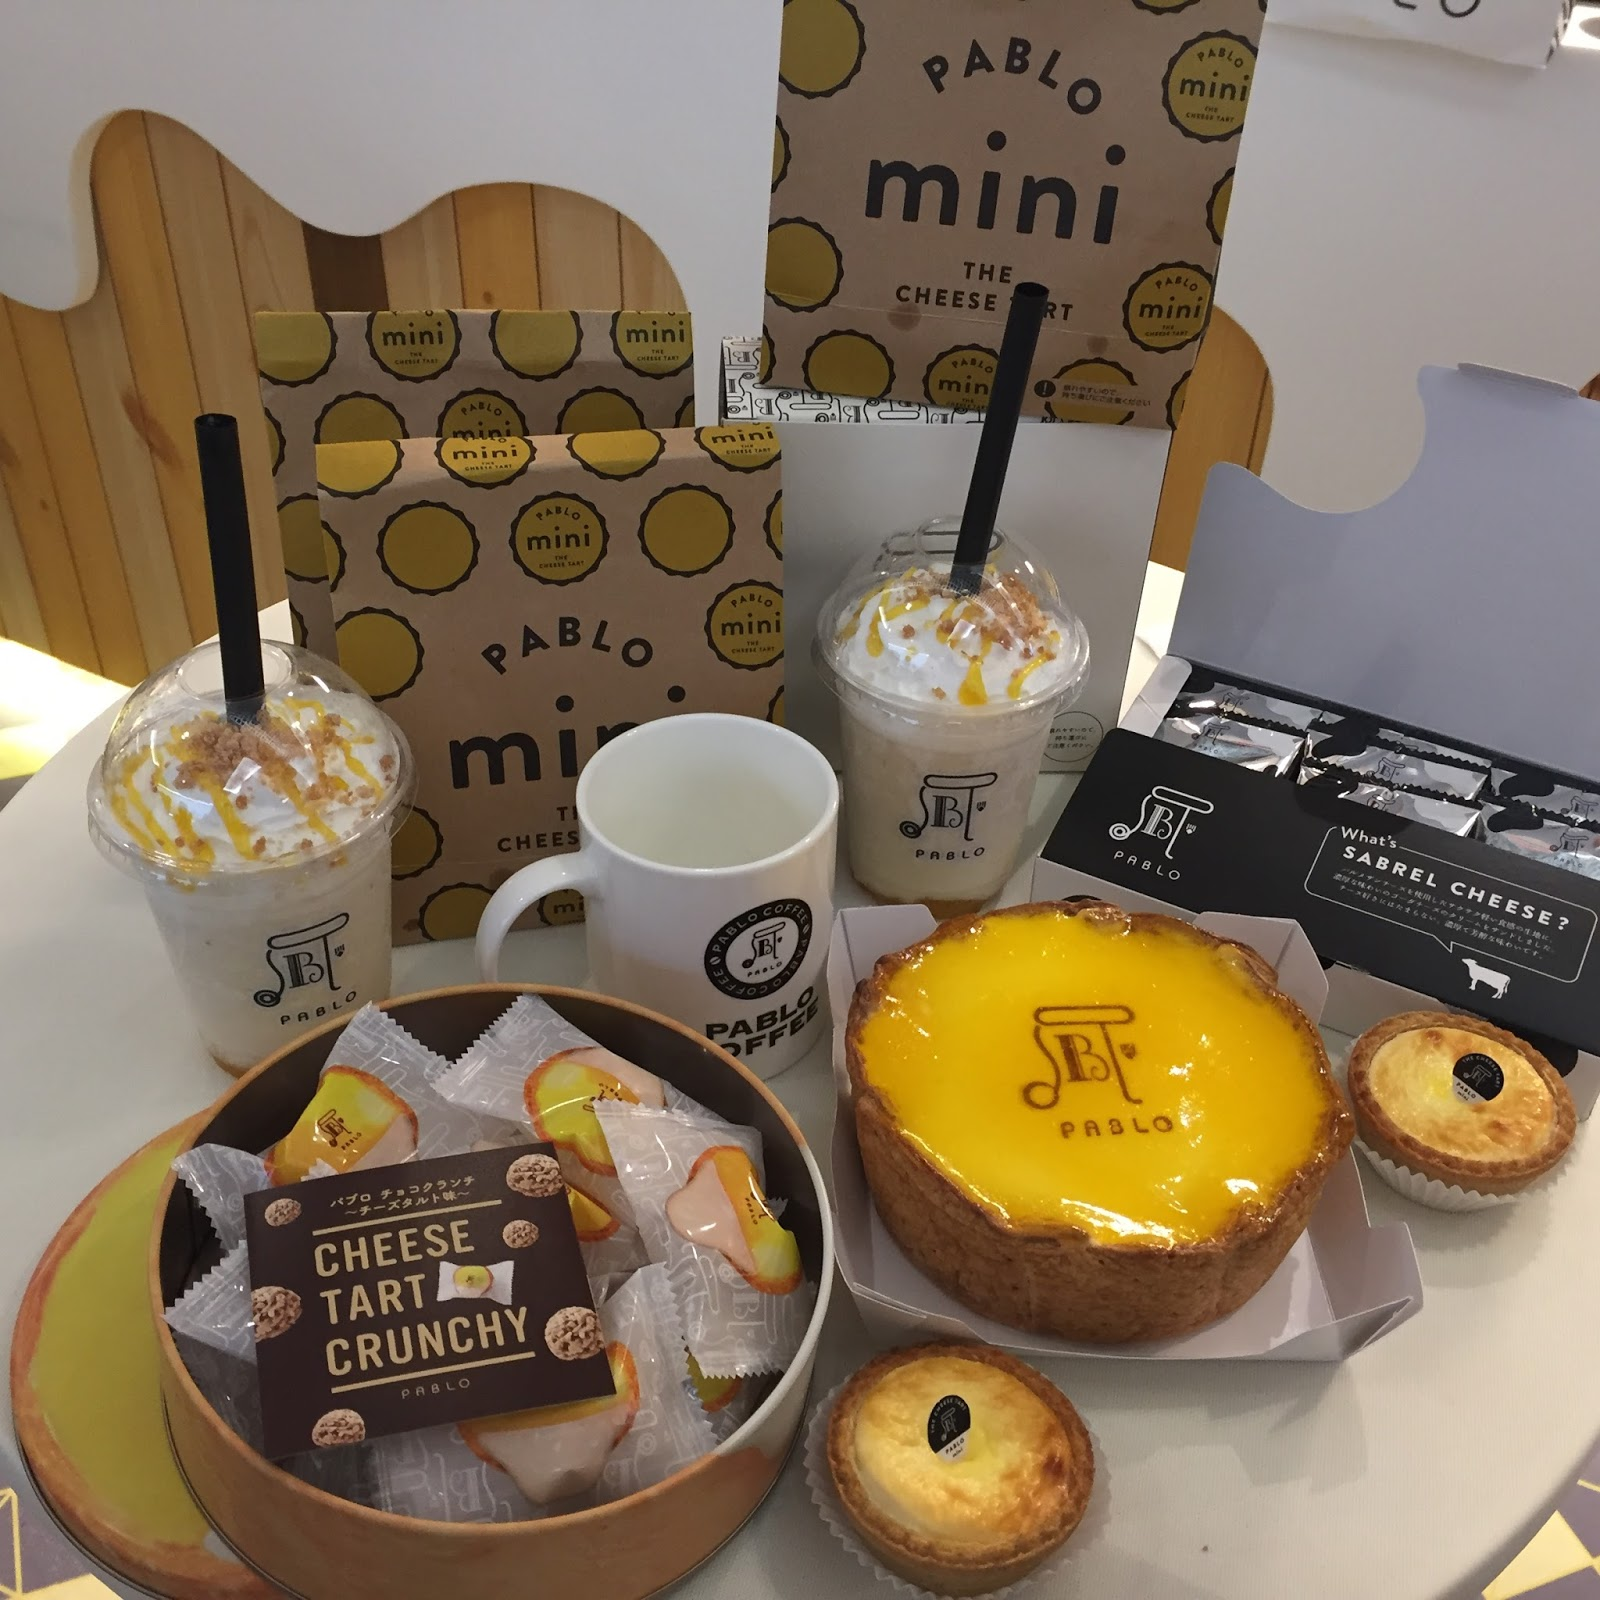 Pablo Freshly Baked Cheesetart In Malaysia At 1 Utama Shopping Sabrel Cheese Black Is A One Stop Concept Store For Cheesy Gastronomical Delights Headlining Its Wide Range Of Mouth Watering Classic Massive Mini Tarts